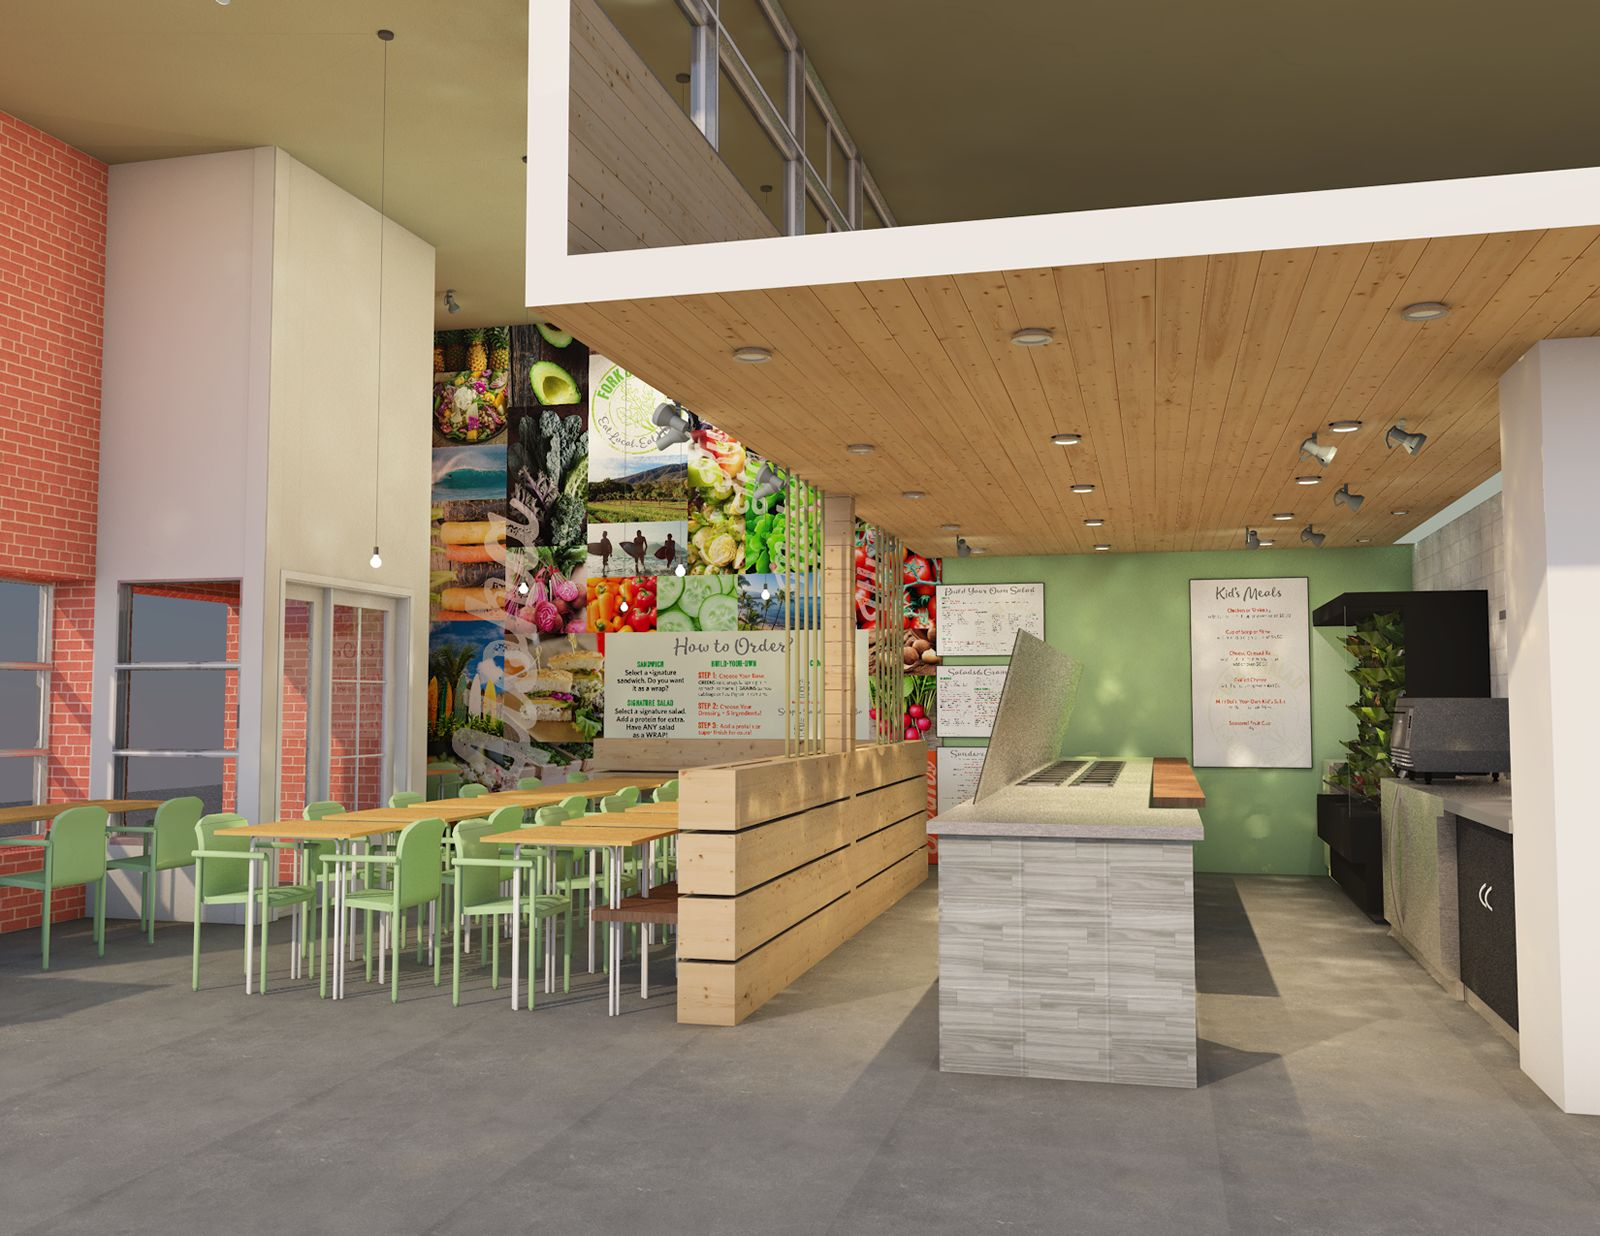 Fork & Salad, the Maui-based farm-to-table fast casual eatery, has announced it will open its third corporate location and first U.S. mainland store in Orange, CA at 240 W. Chapman Avenue before the end of 2018.